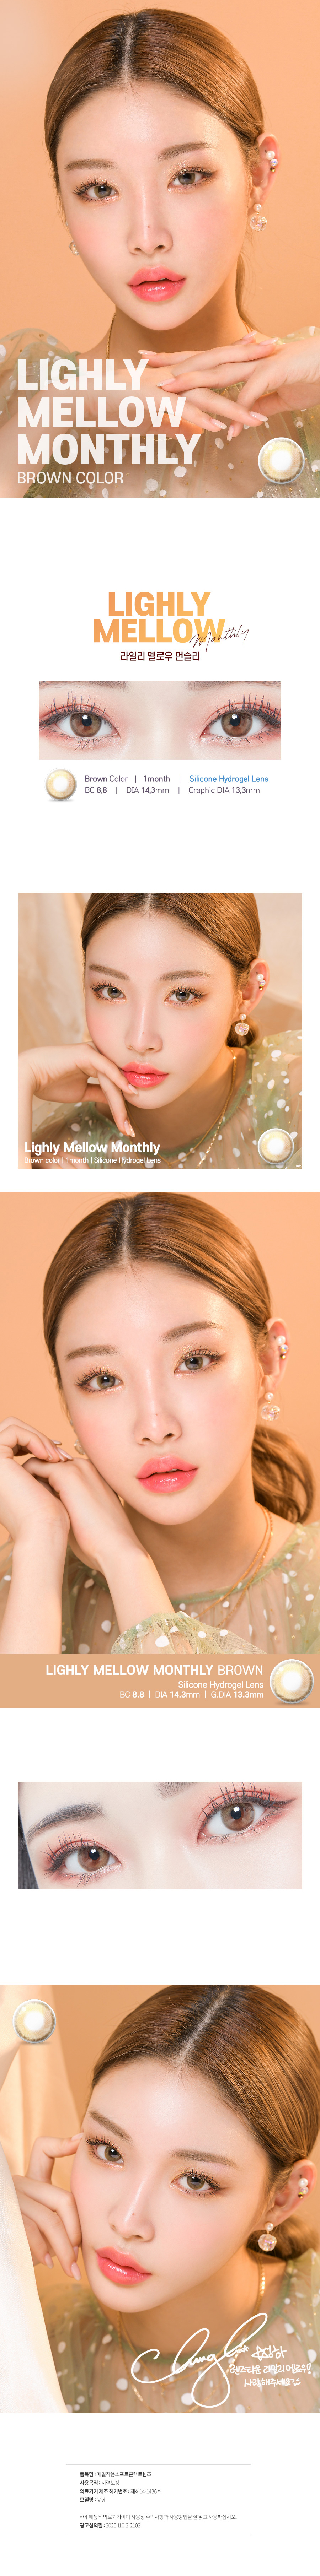 Lighly Mellow Brown Monthly